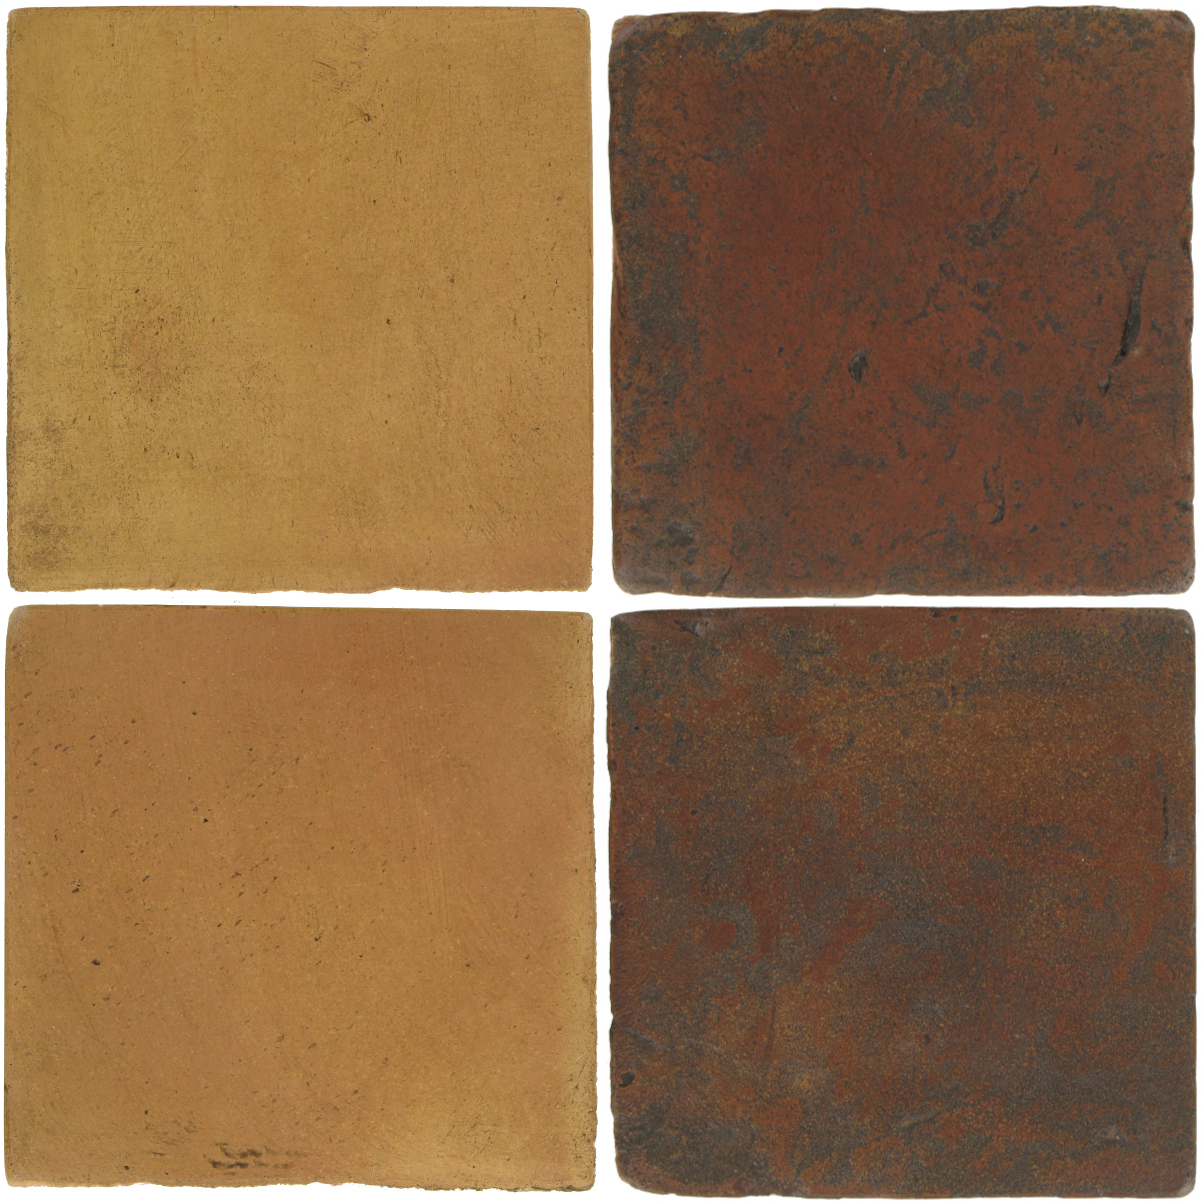 Pedralbes Antique Terracotta  2 Color Combinations  OHS-PSSW Siena Wheat + VTG-PSOW Old World